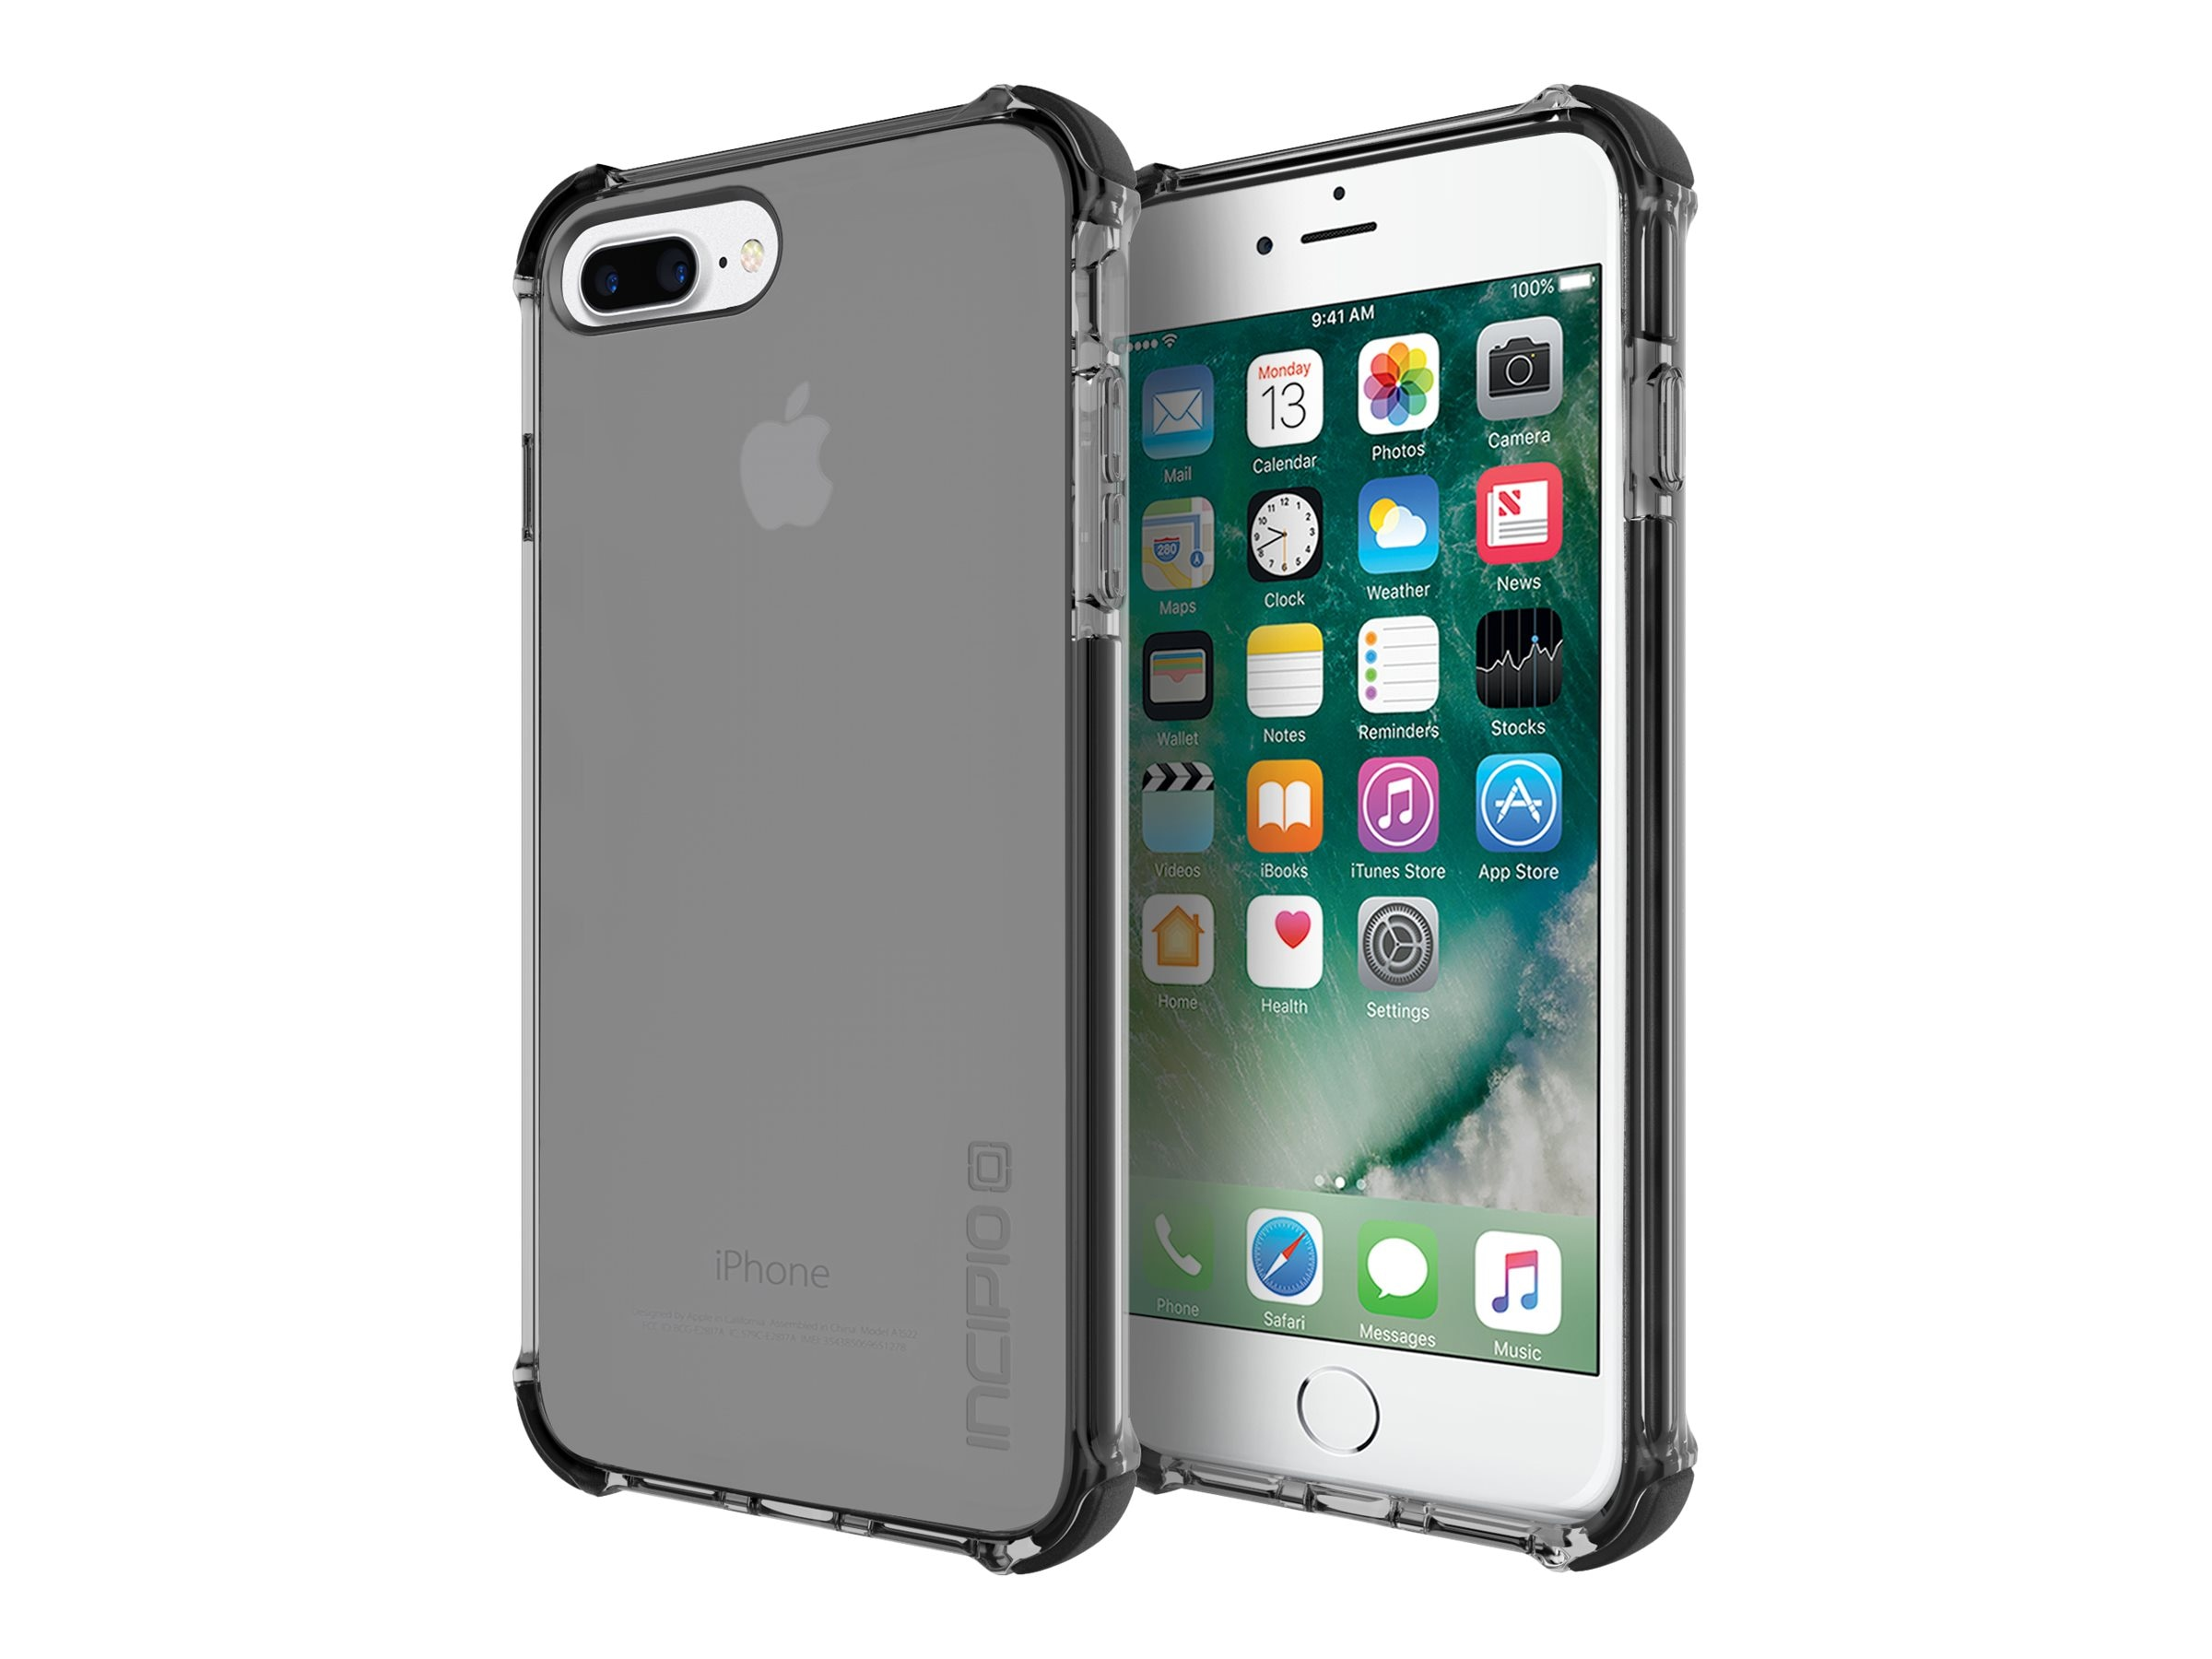 Incipio Reprieve Sport Protective Case with Reinforced Corners for iPhone 7 Plus, Smoke Black, IPH-1496-SBK